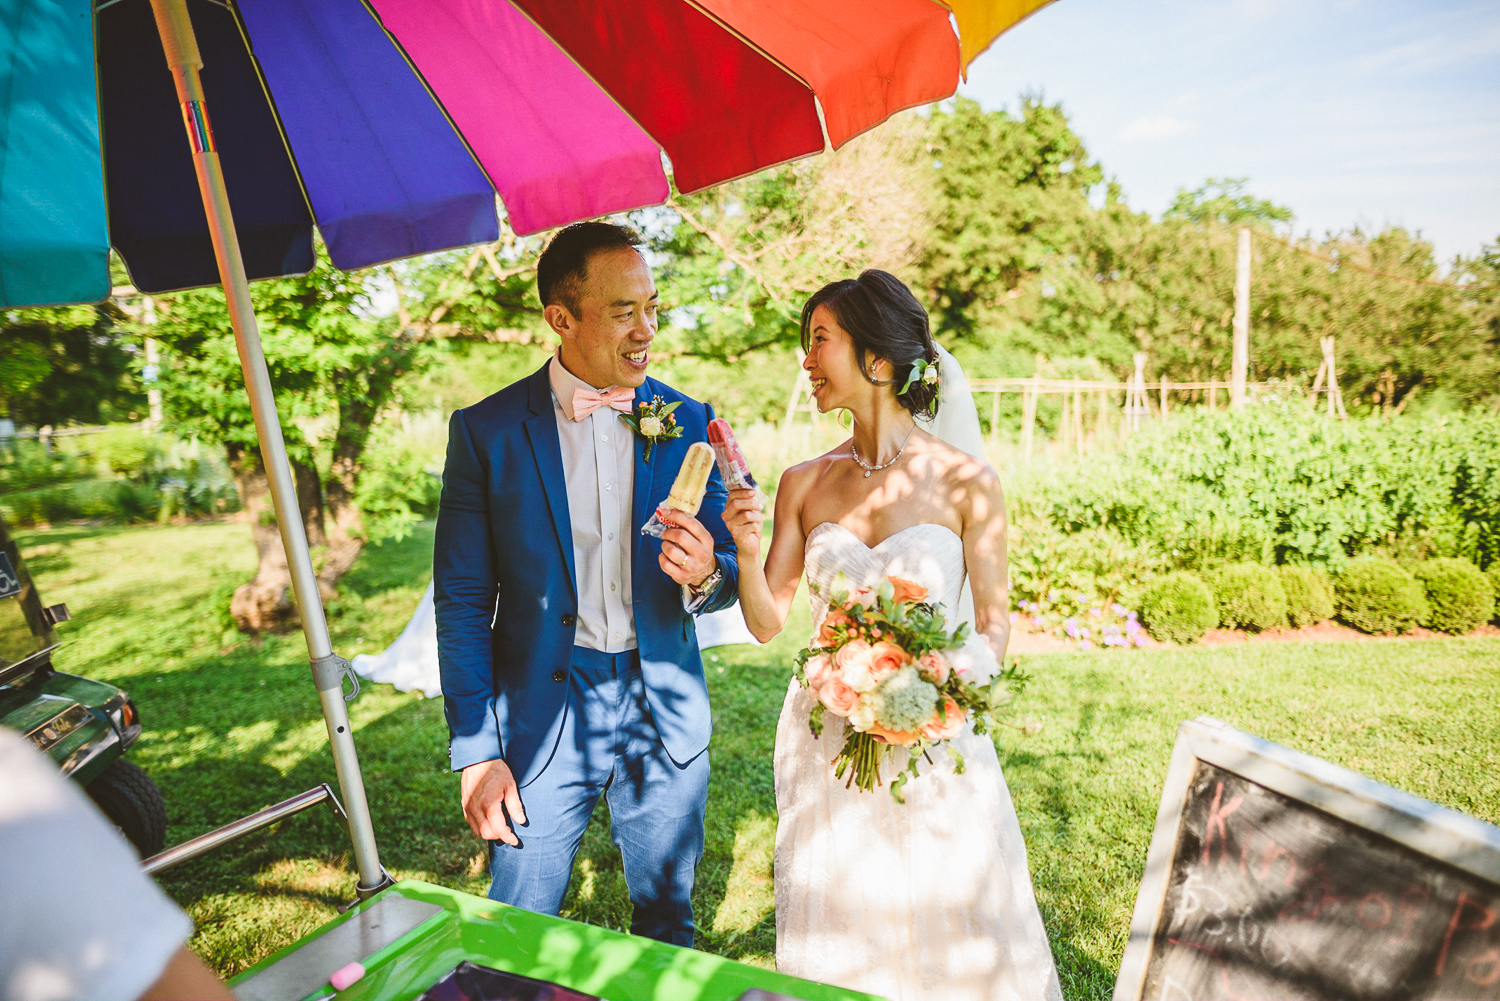 044 - bride and groom eat king of pops popsicles at their wedding in virginia.jpg